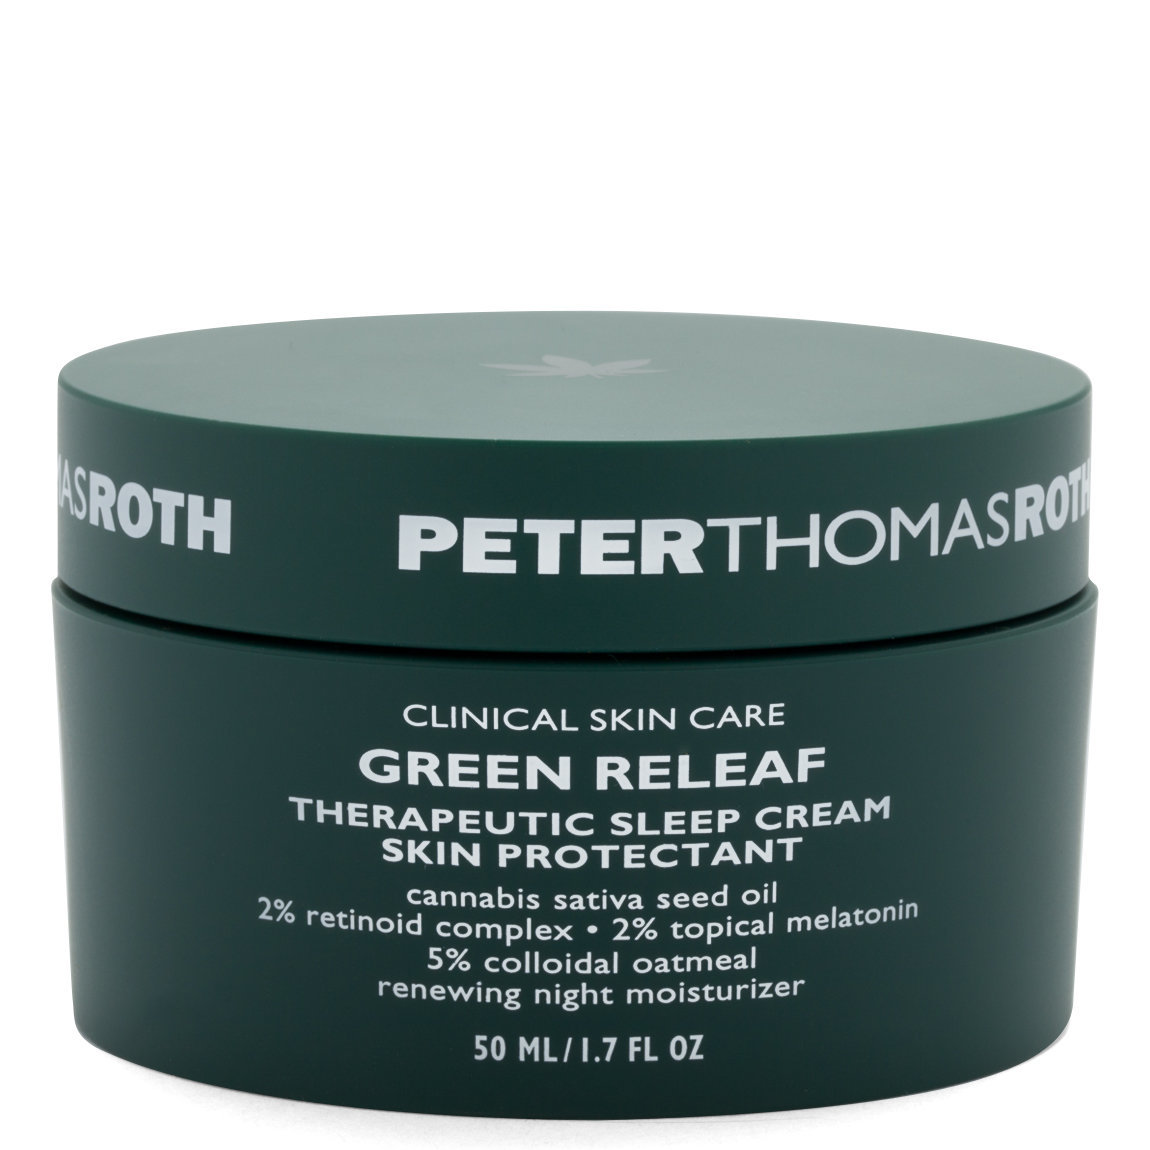 Peter Thomas Roth Green Releaf Therapeutic Sleep Cream product swatch.